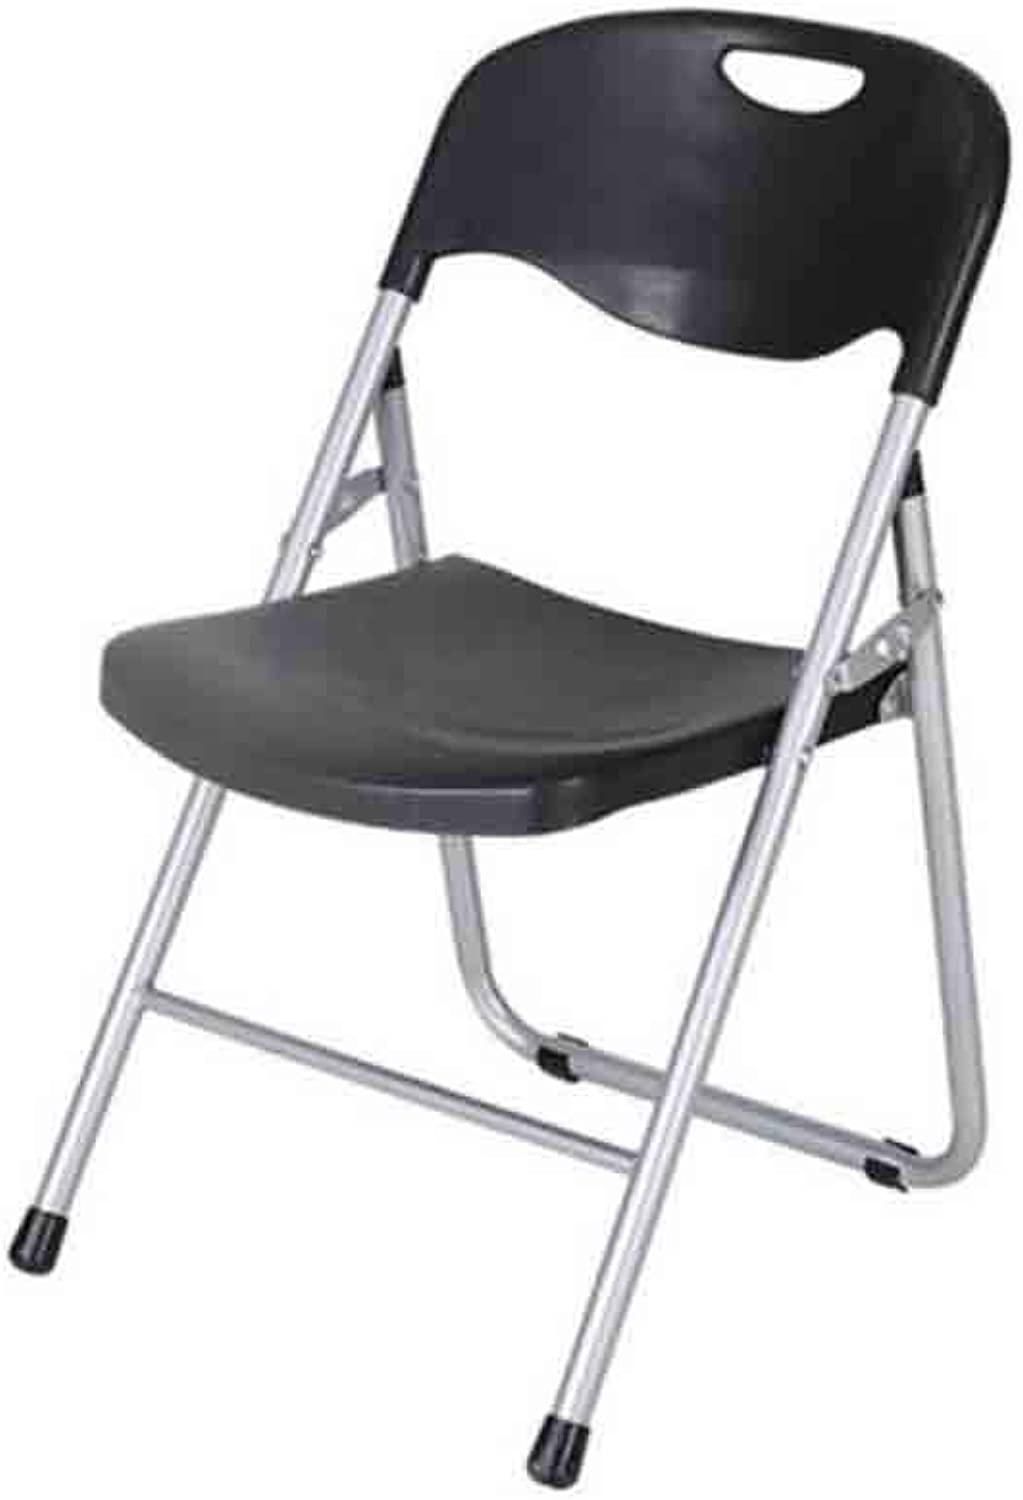 YCSD Folding Chair, Office Training Conference Chair,Plastic Computer Chair Dining Chair (color   Black)